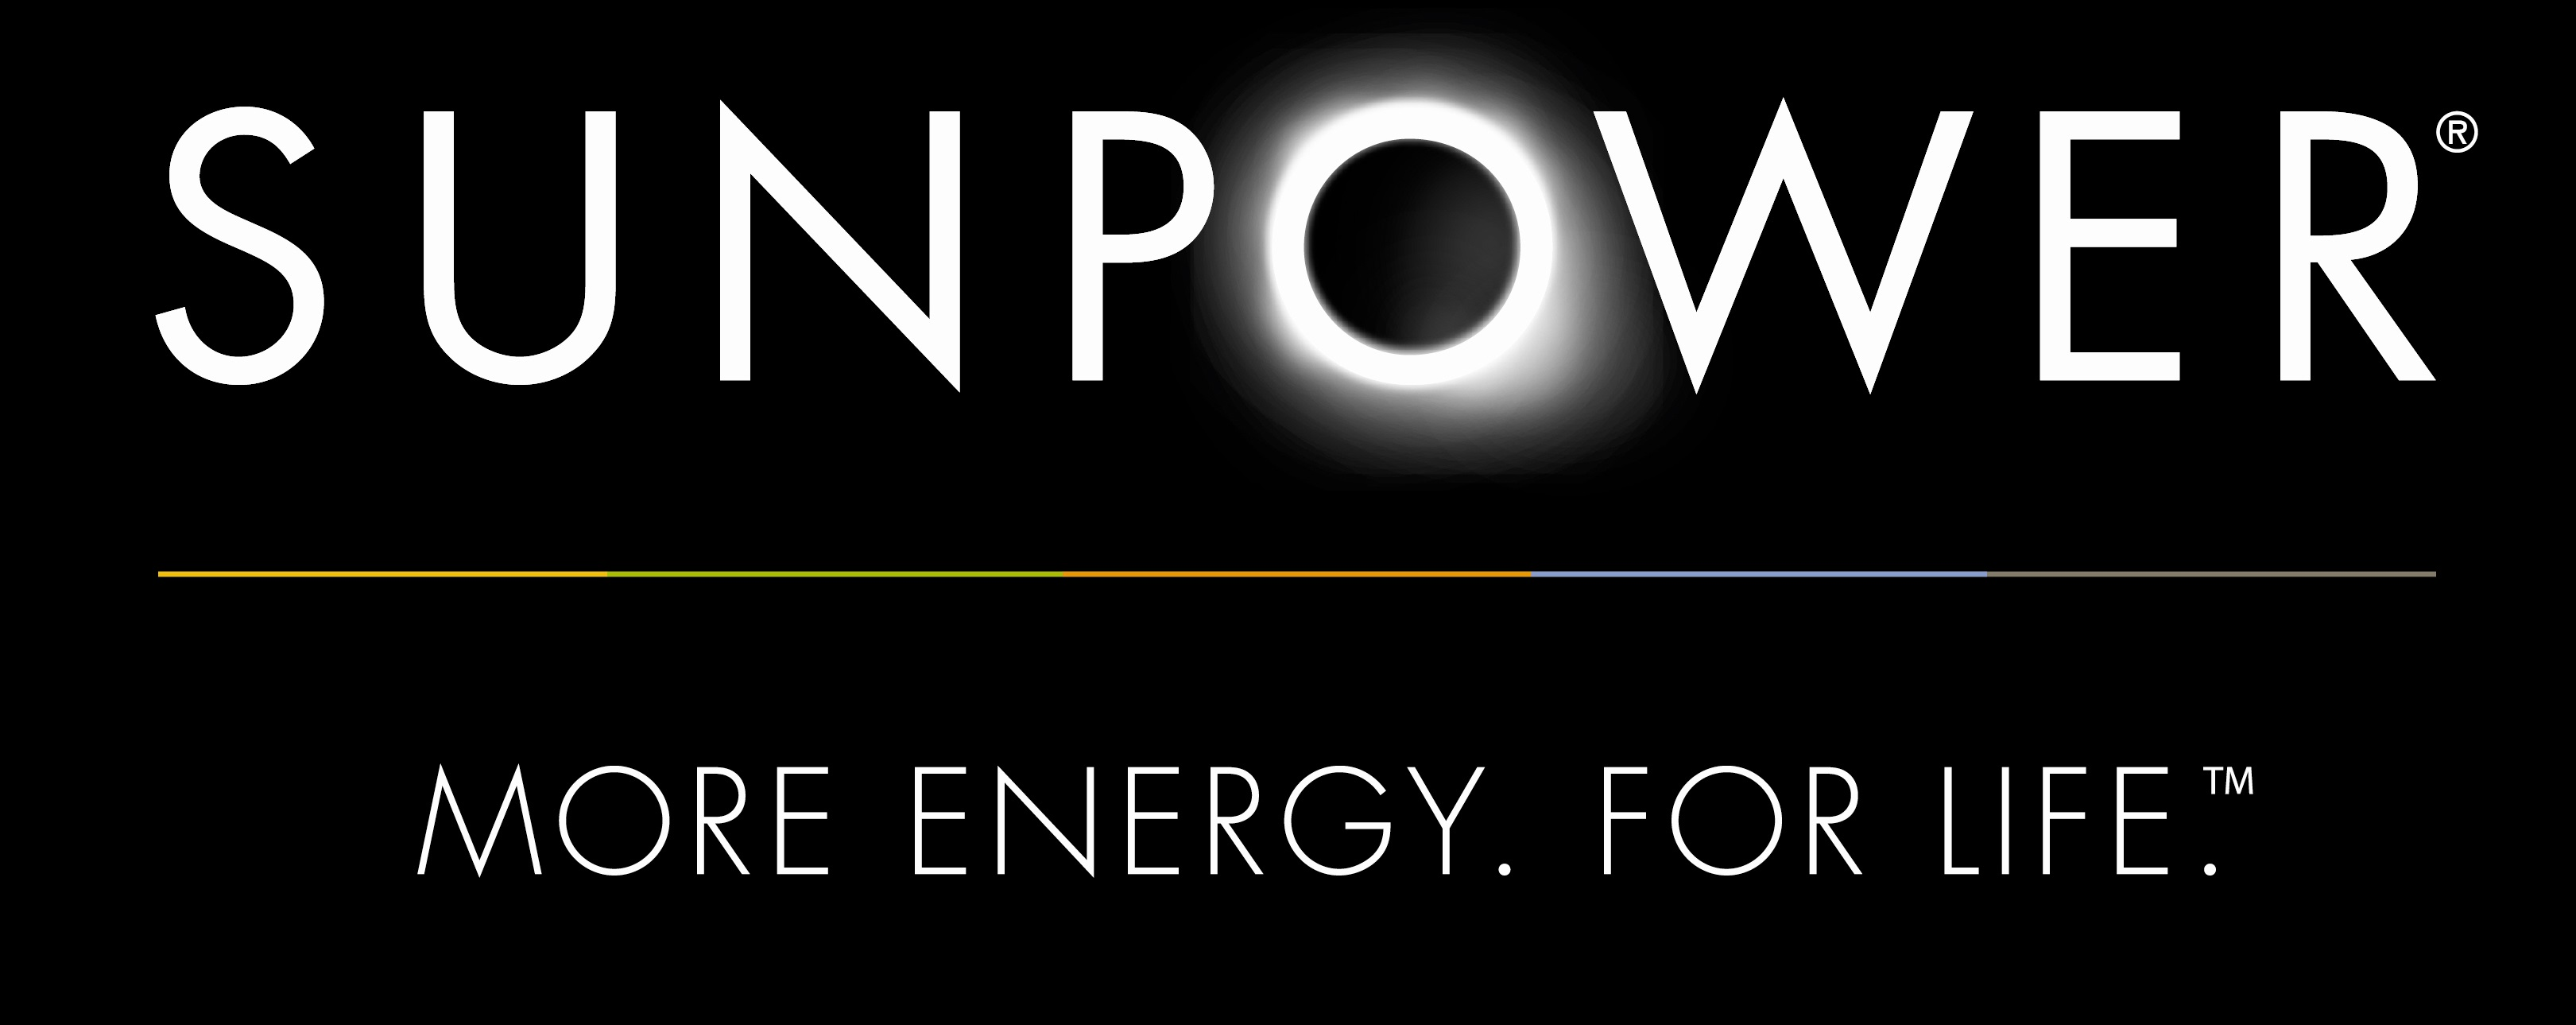 Save on purchase or lease of a SunPower system. $200 Referral Program.